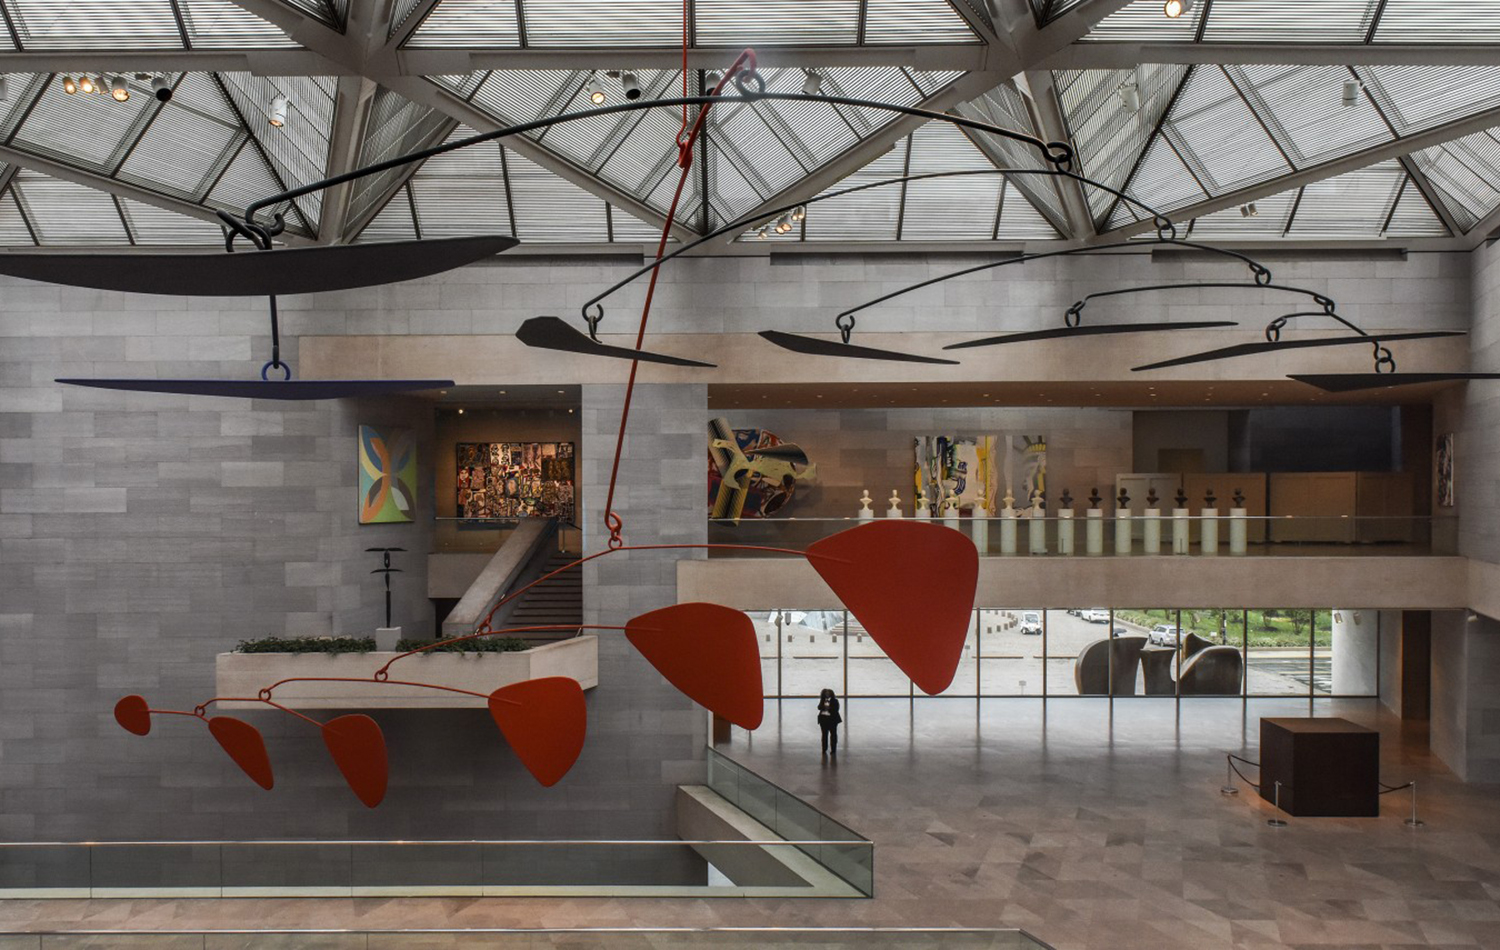 Alexander Calder's 76-foot-long mobile still hangs in the atrium. (Bill O'Leary/The Washington Post)